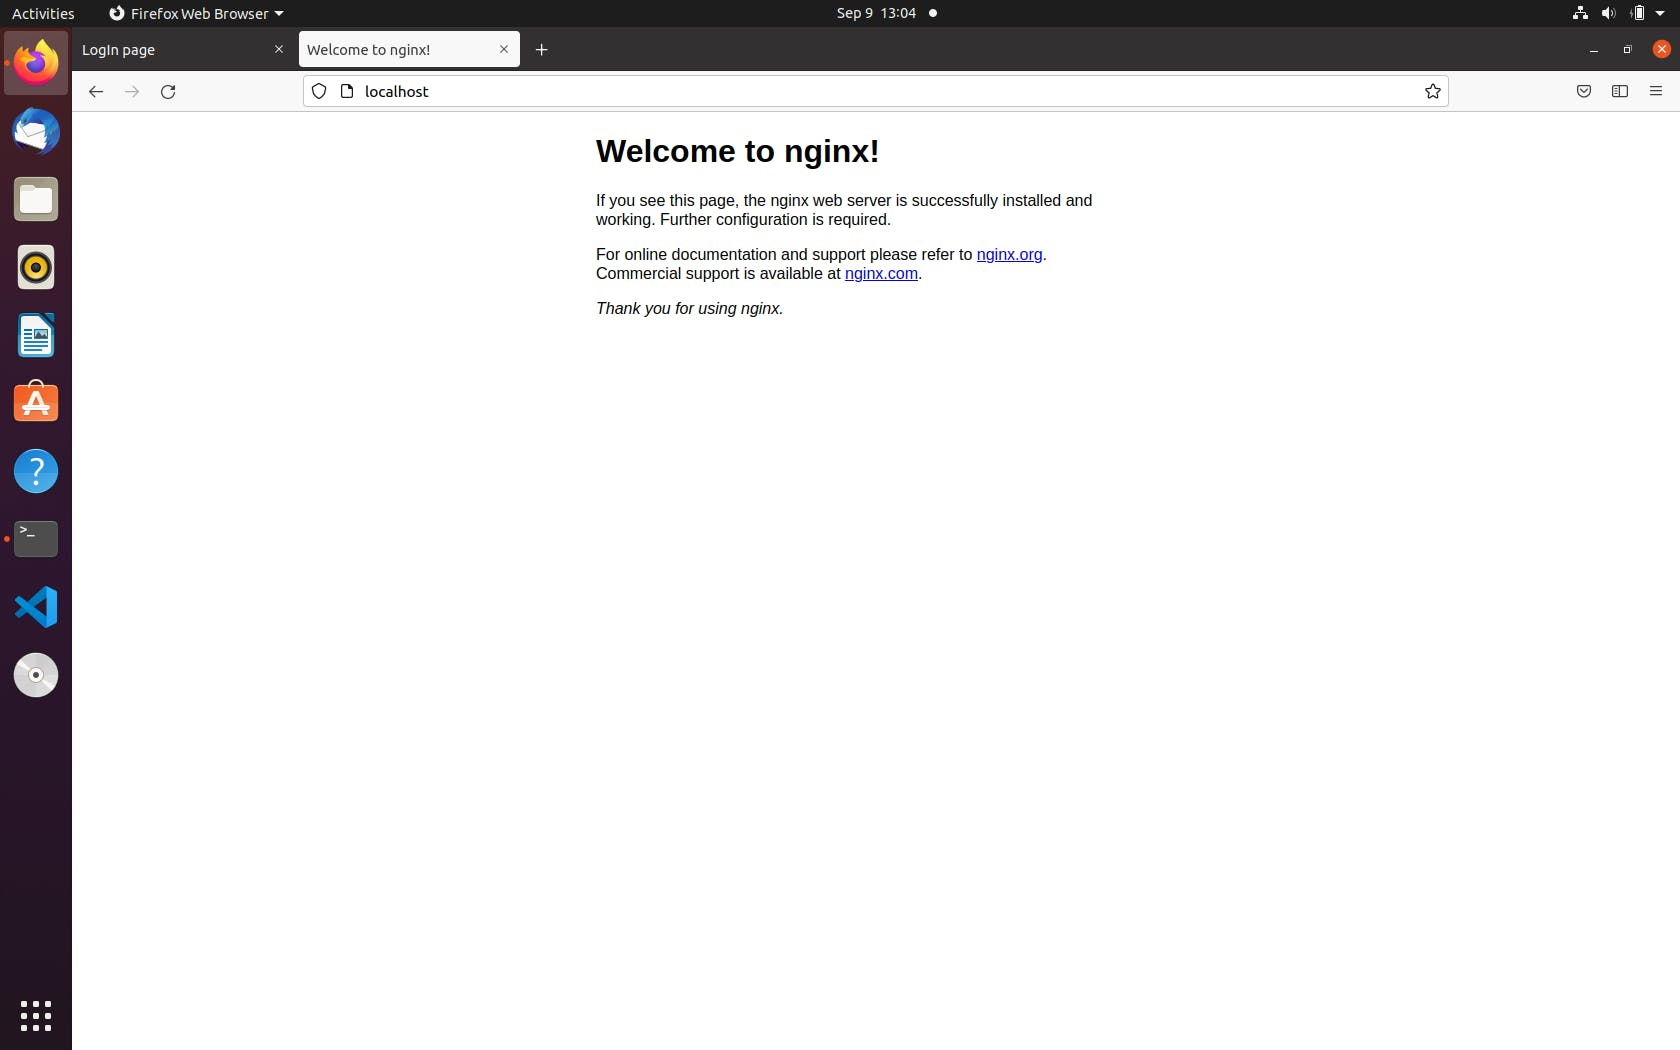 nginx-welcome-page.png